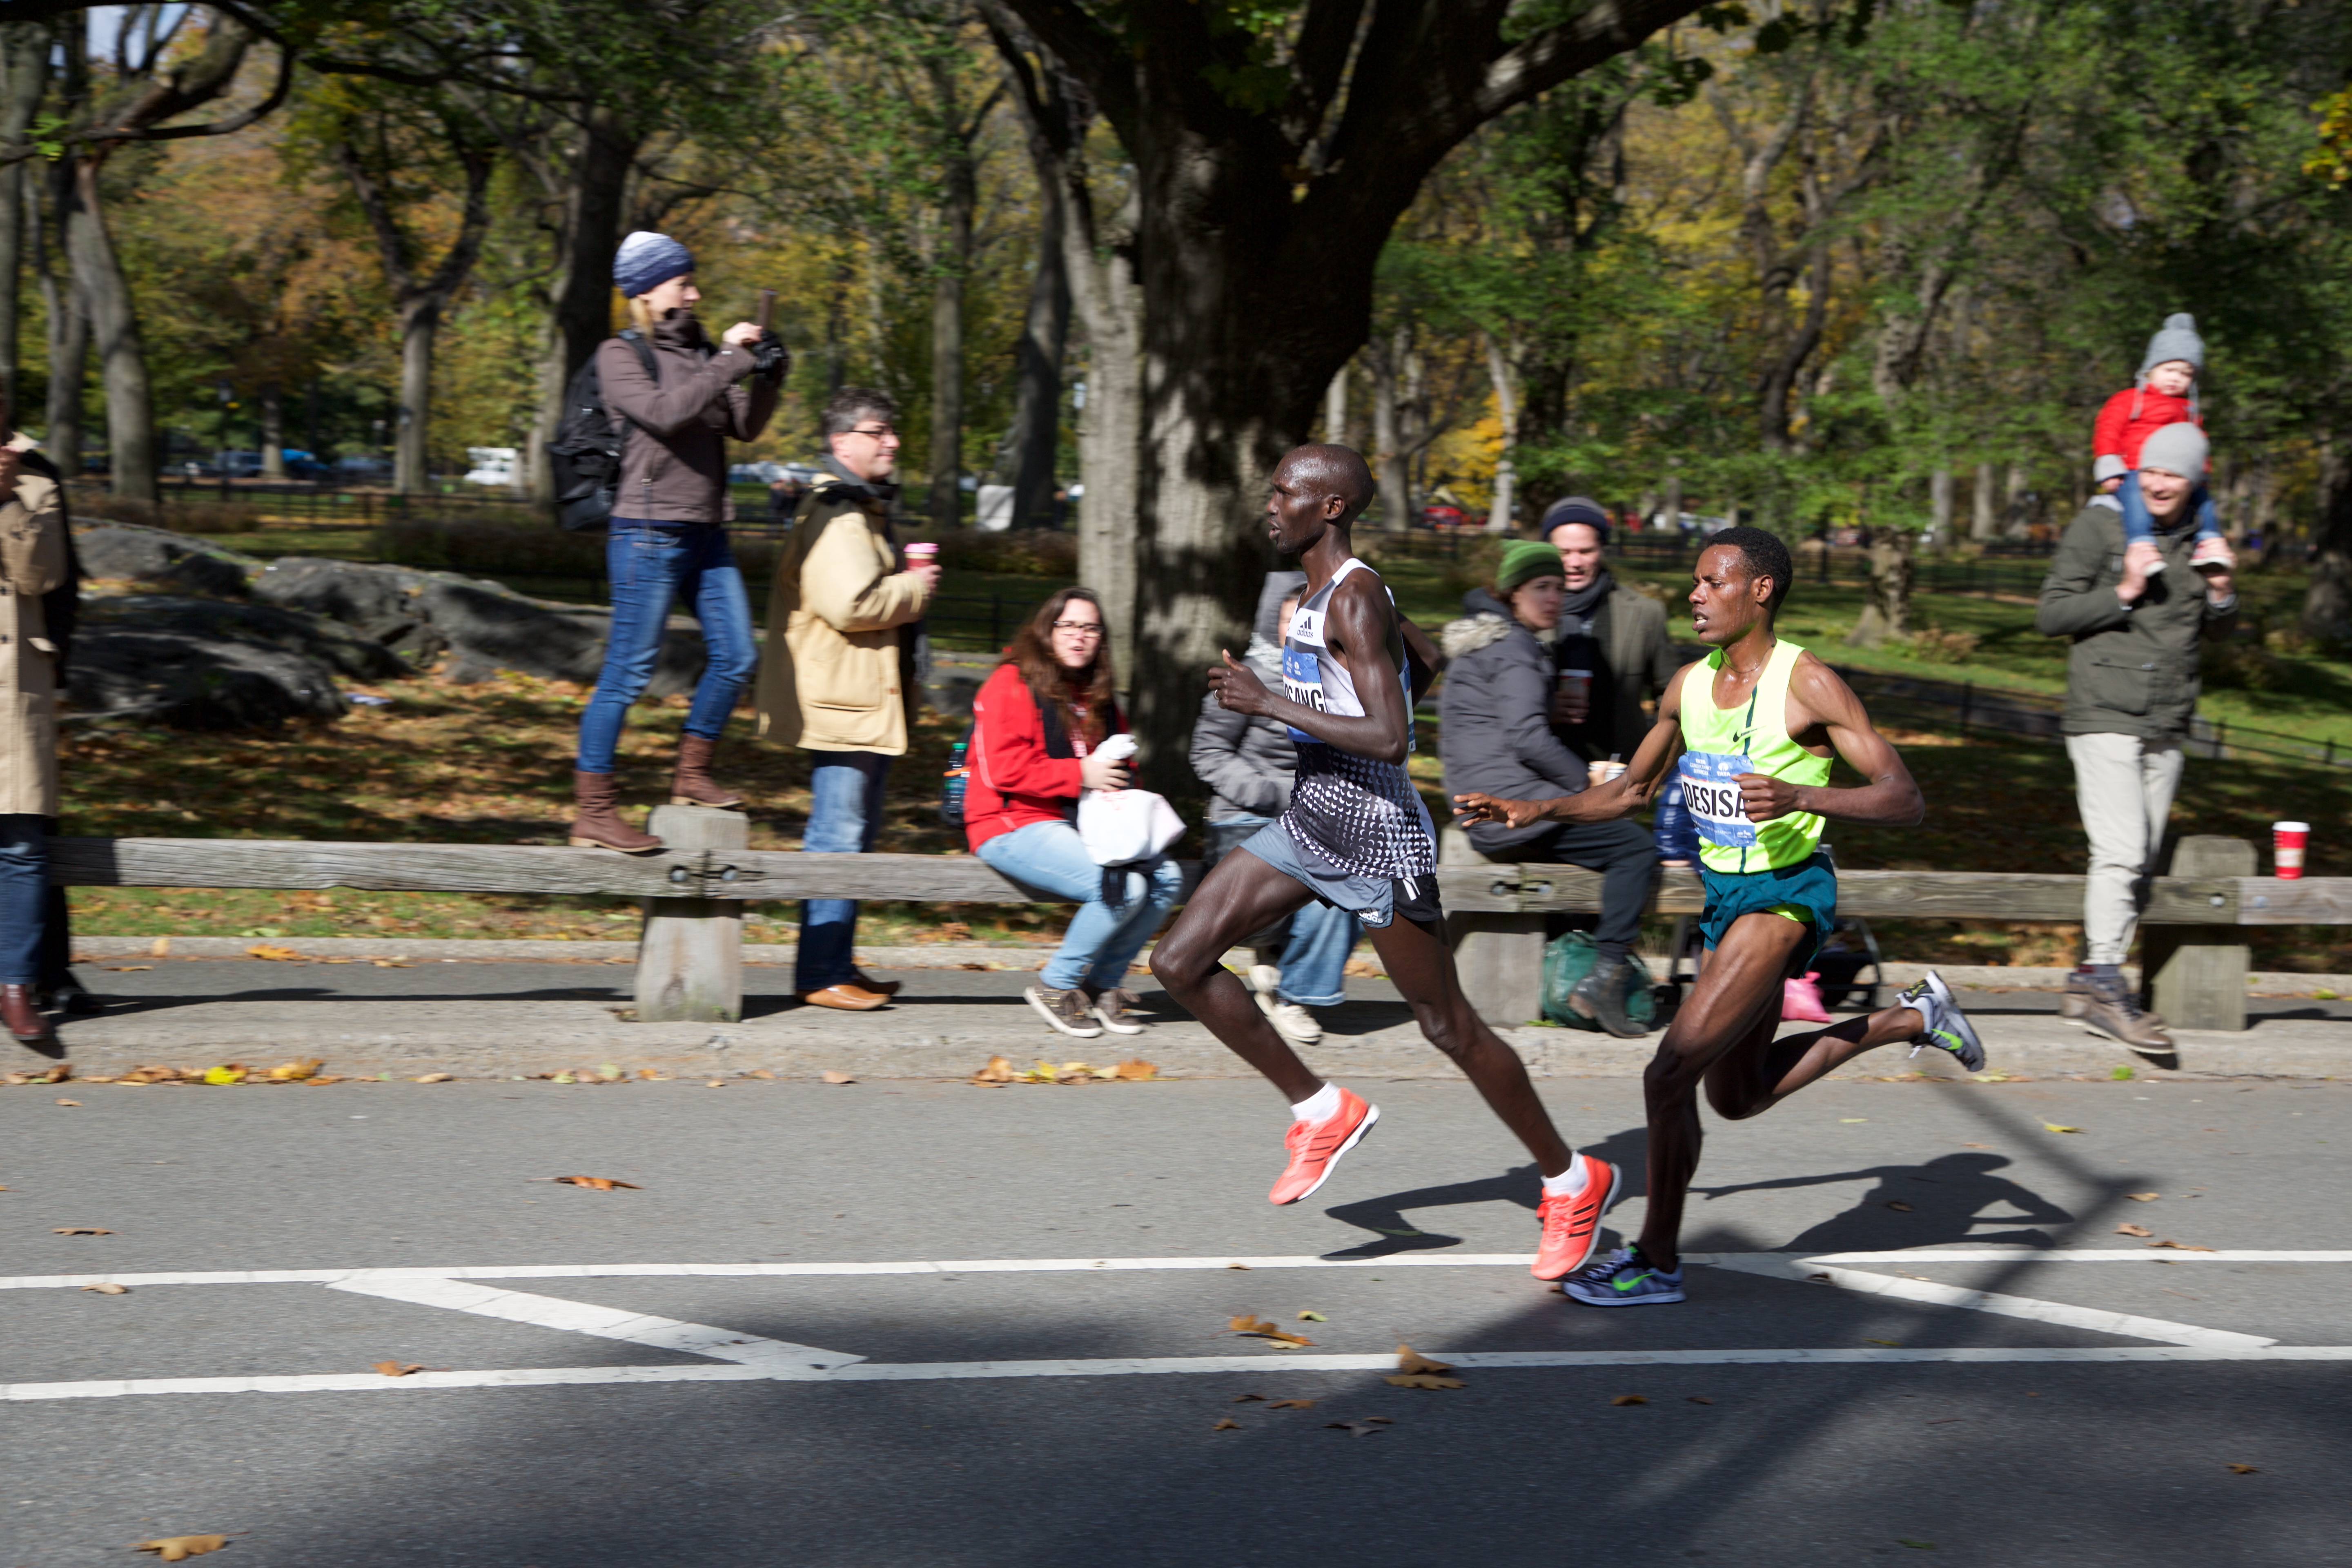 Picture of NYC Marathong runners, soon to be winners